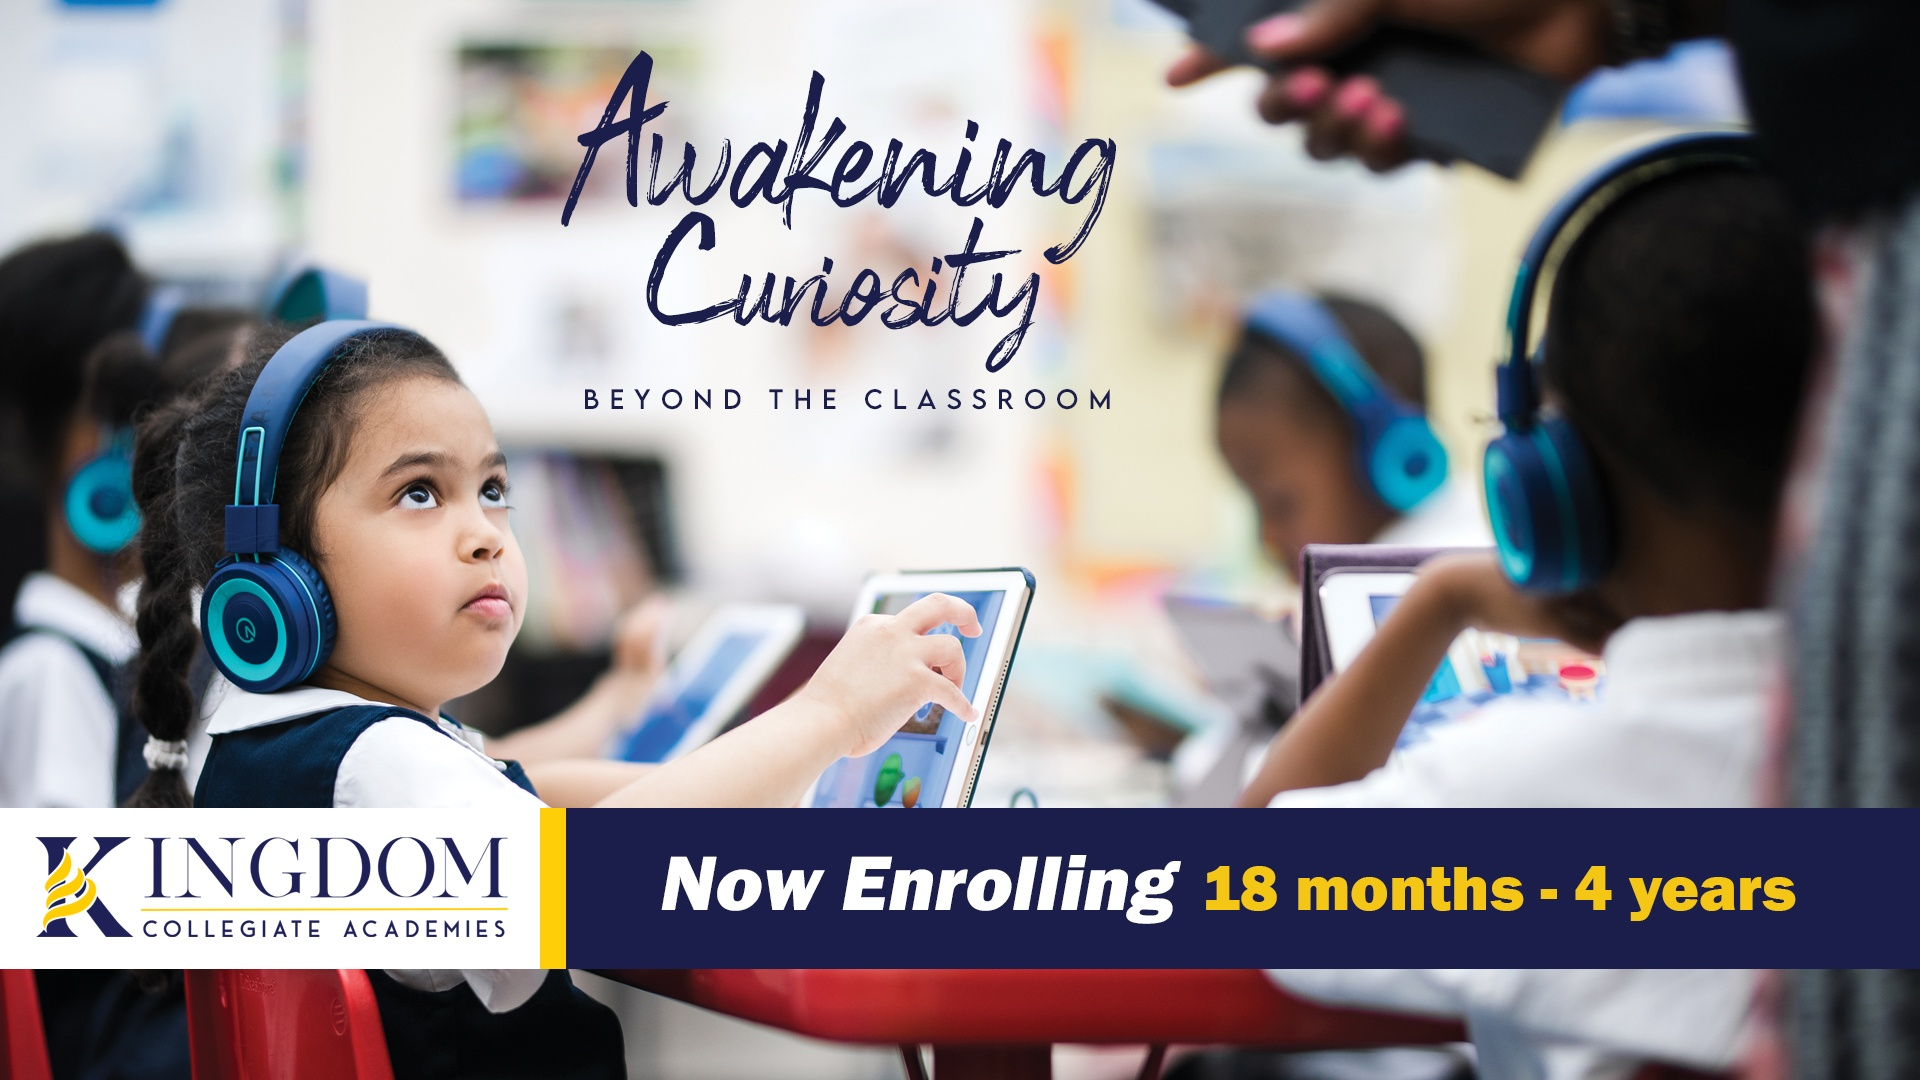 Kingdom Collegiate Academies young students 18 months to 4 years old